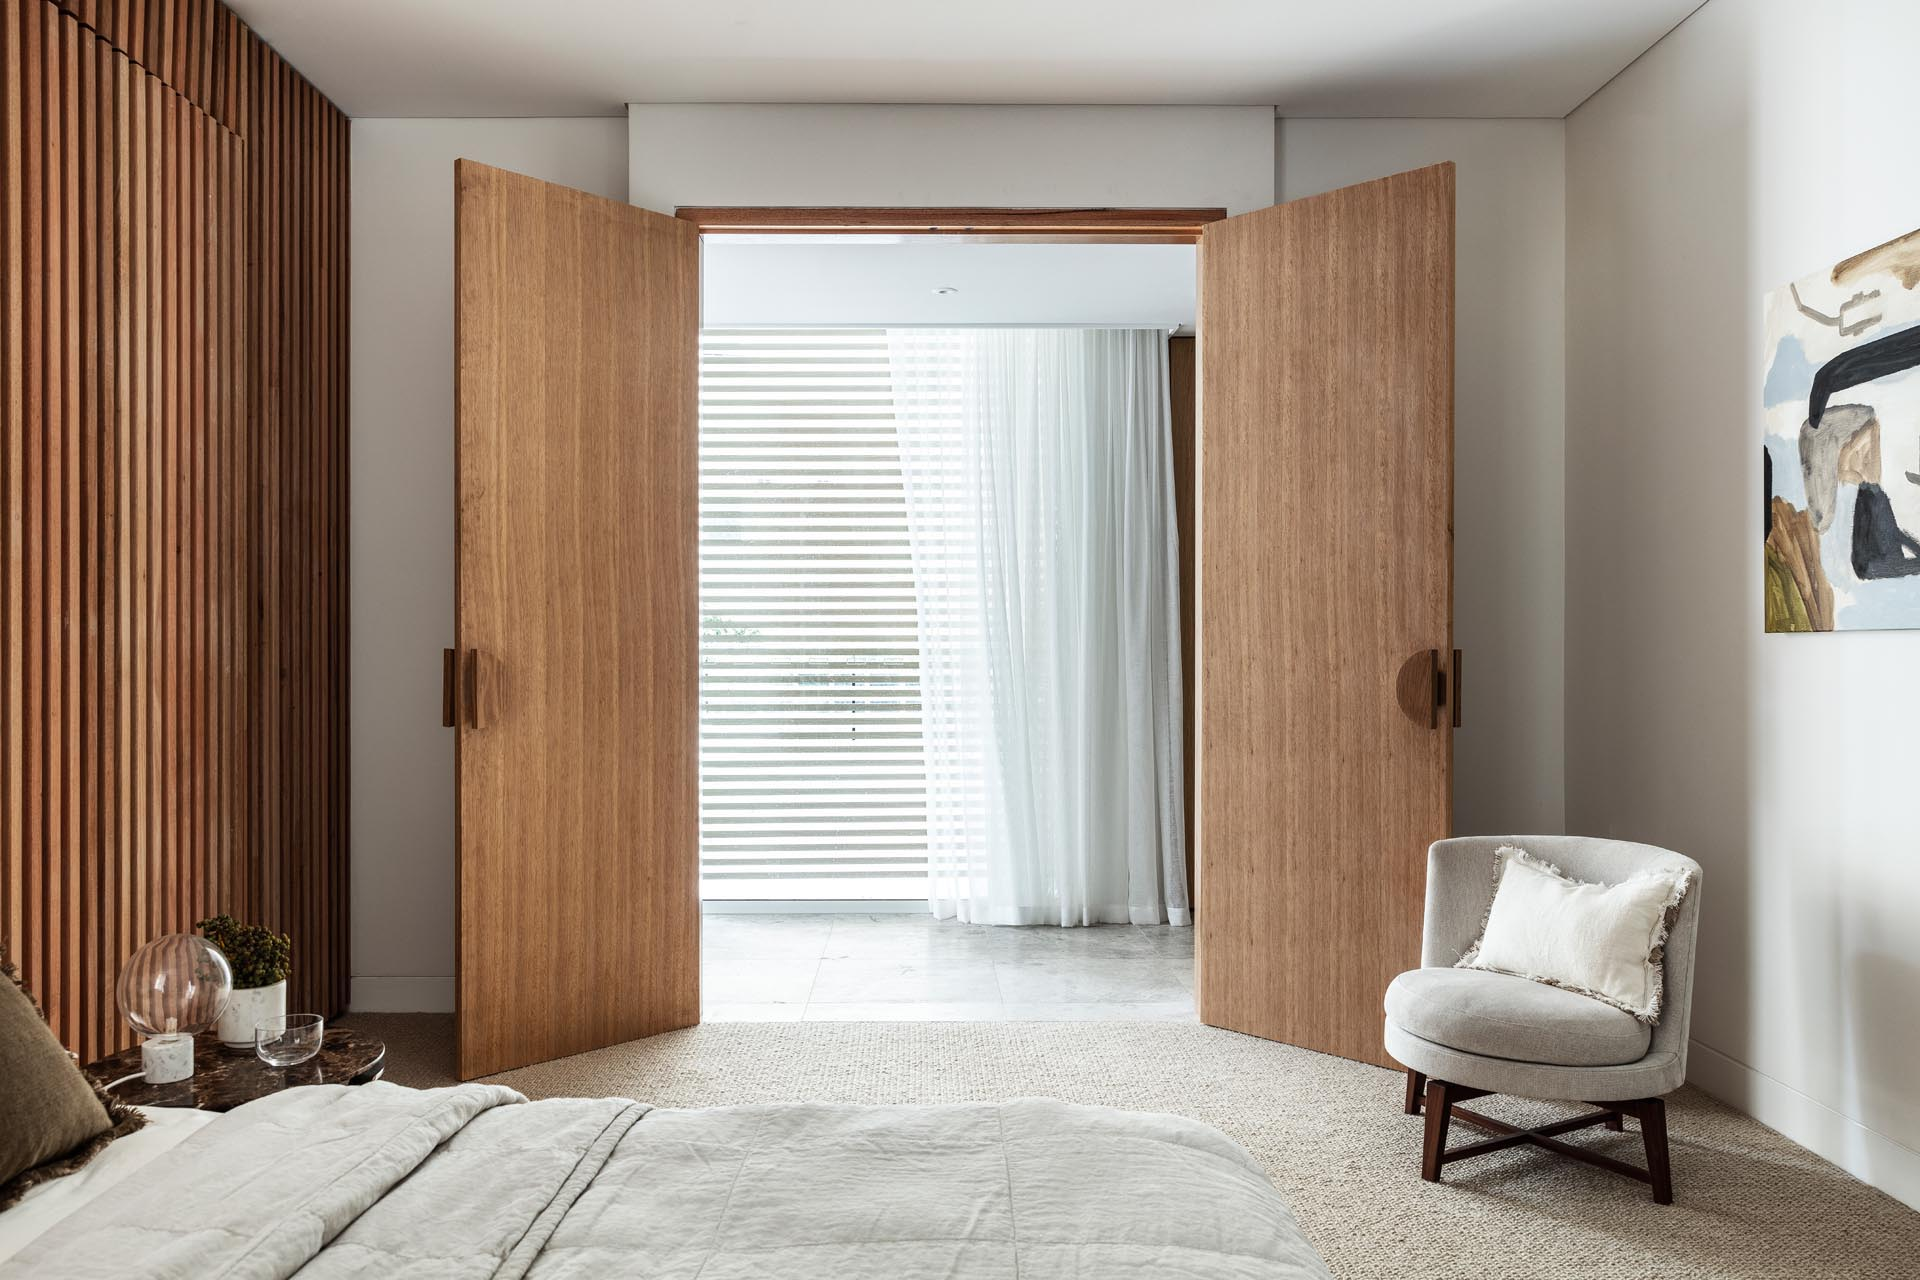 Two wood doors open to this modern bedroom, where a wood slat wall has been used to create an accent wall behind the bed.